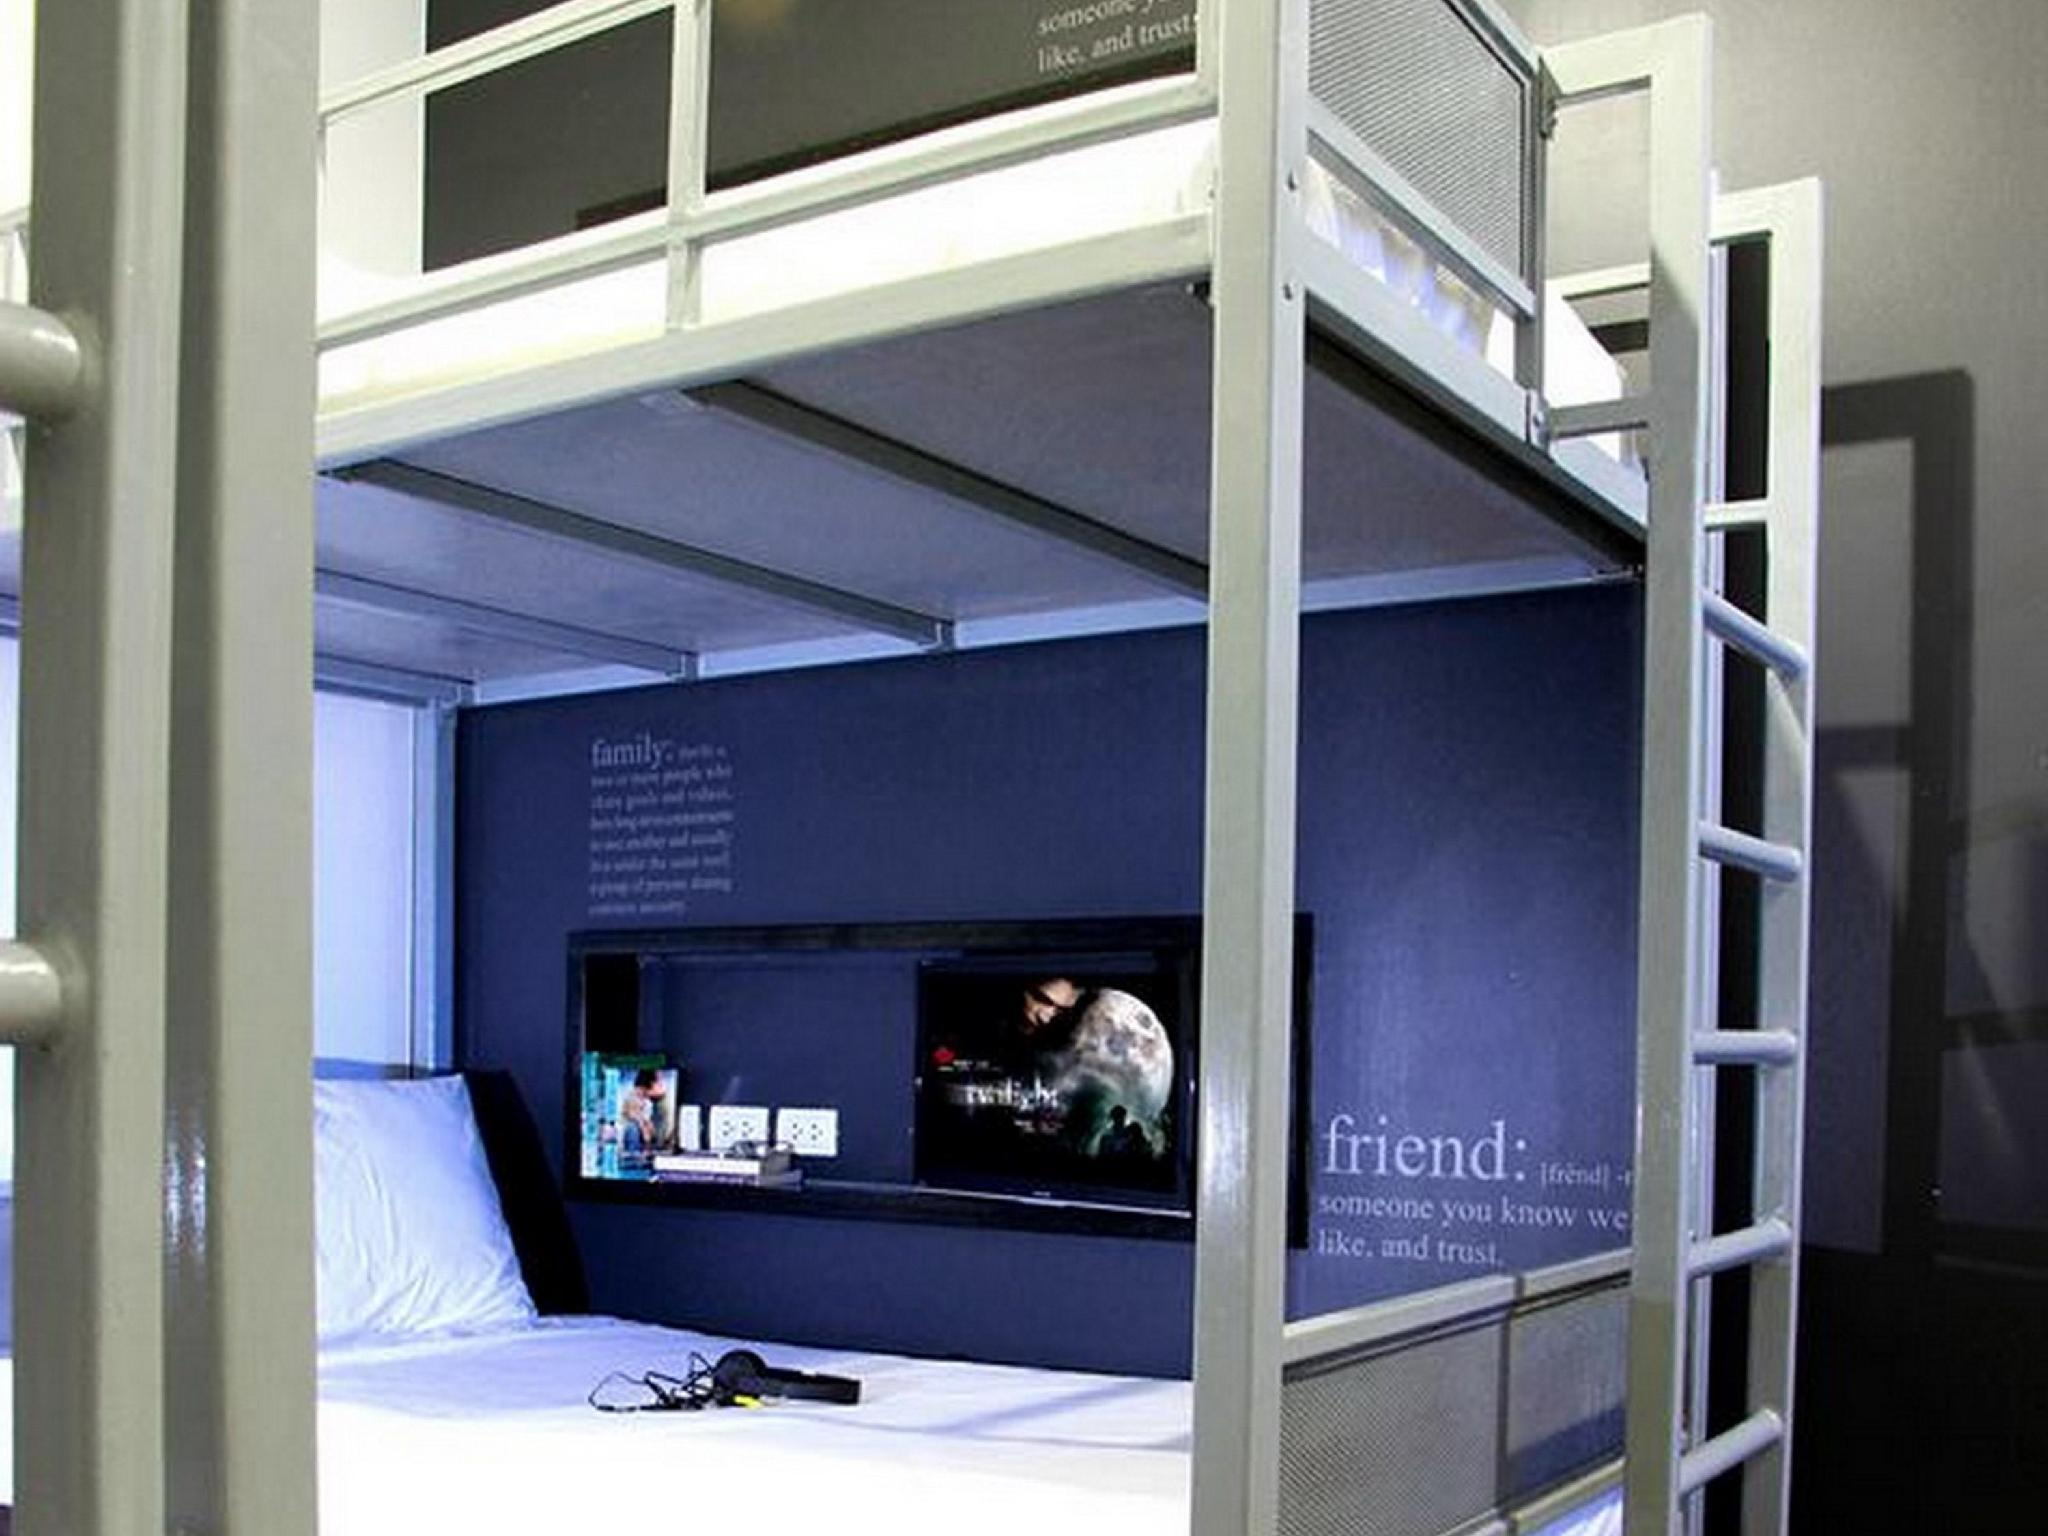 Quadruple lits superposés (Quad bunk bed)